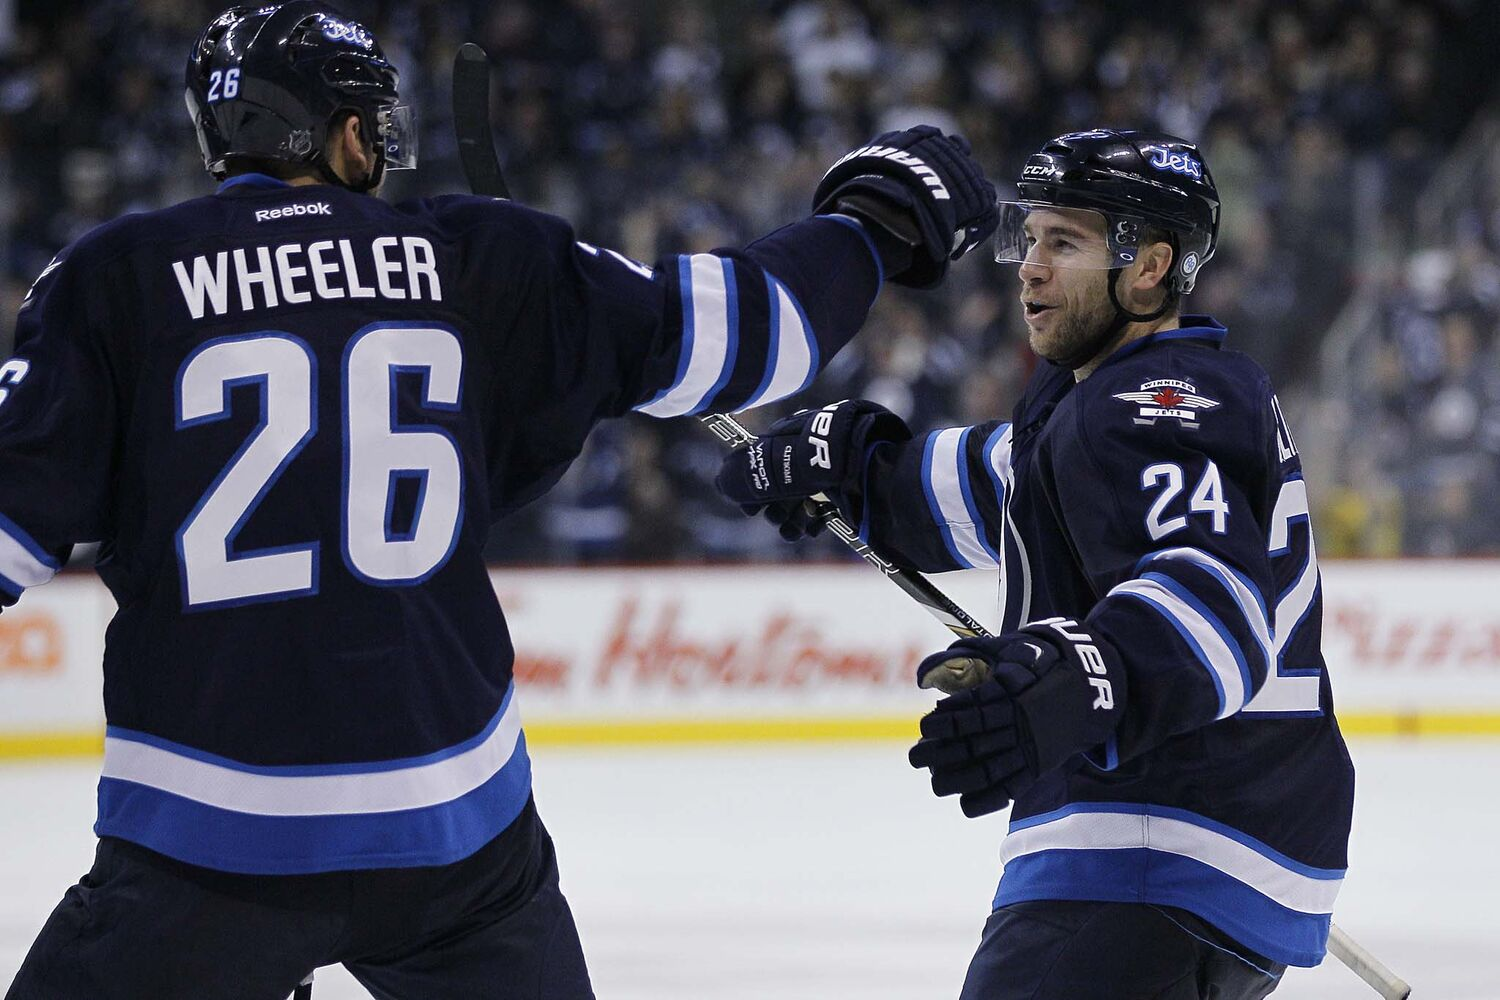 Winnipeg Jets' Grant Clitsome (24) and Blake Wheeler (26) celebrates Clitsome's goal against the San Jose Sharks during second period action. (JOHN WOODS / WINNIPEG FREE PRESS)